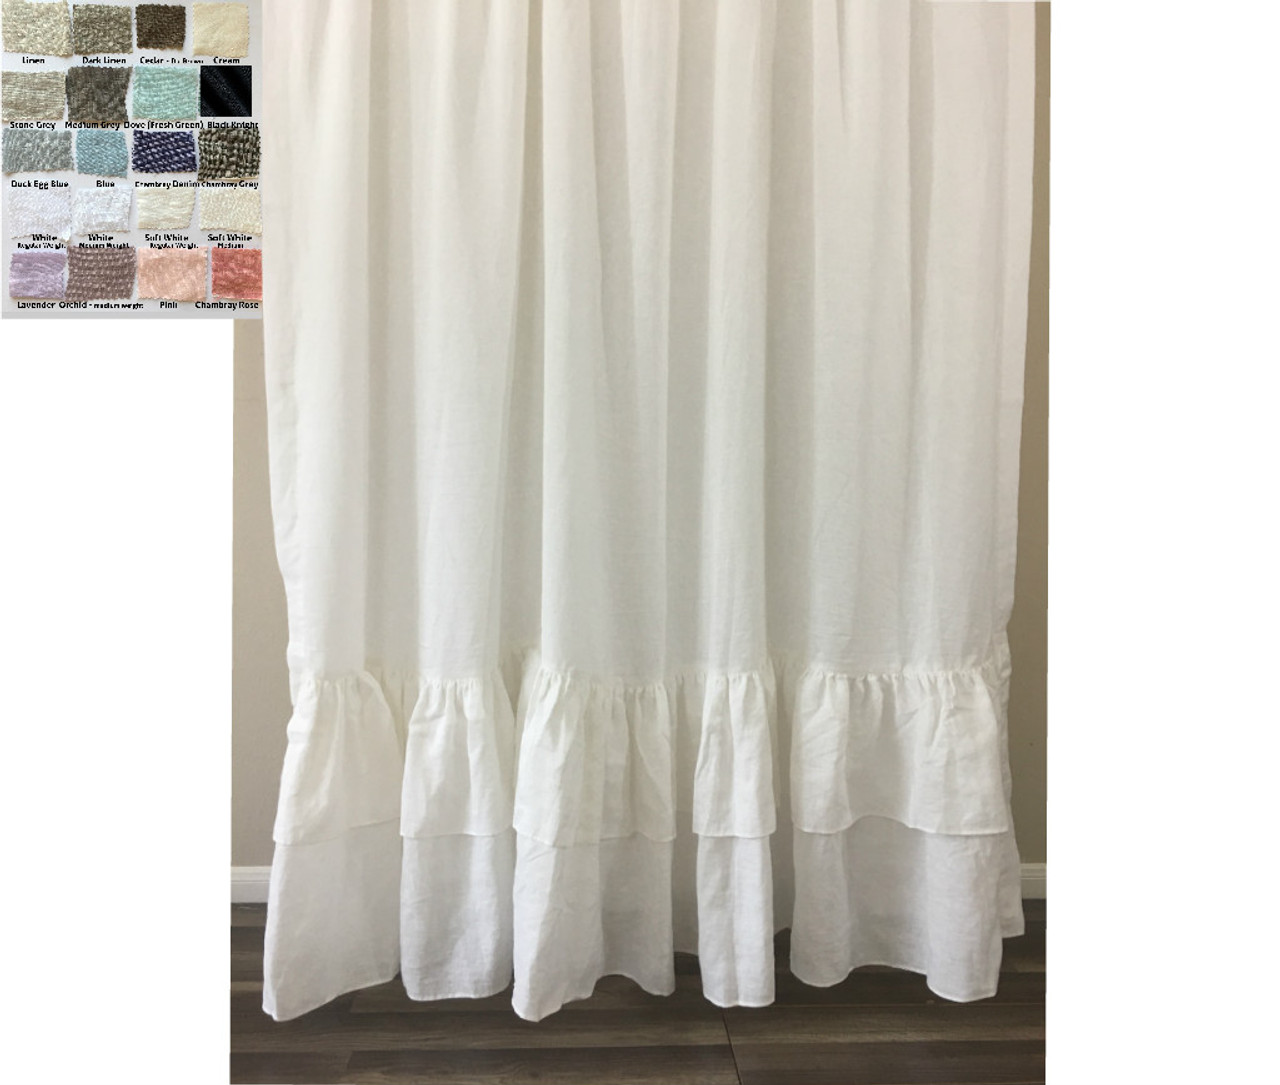 natural linen curtains with double layer mermaid ruffle hem multiple colors - How To Hem Curtains